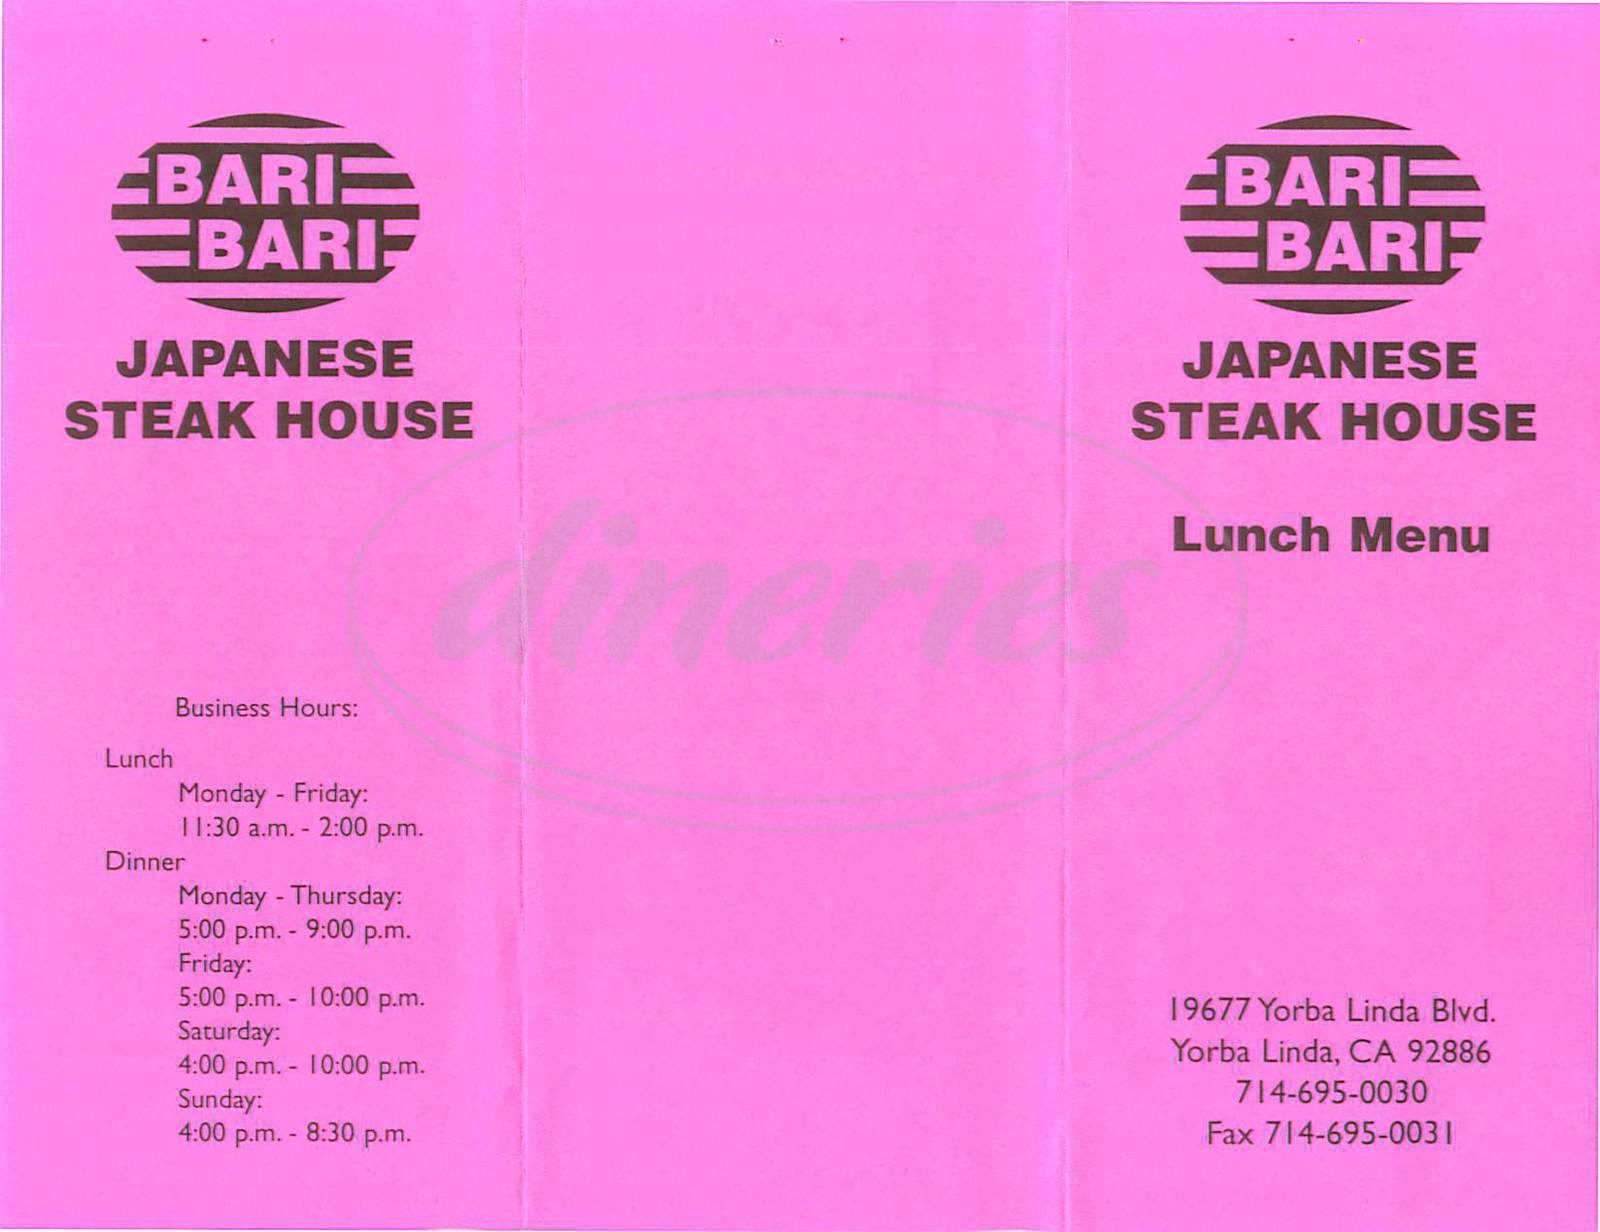 menu for Bari Bari Japanese Steak House